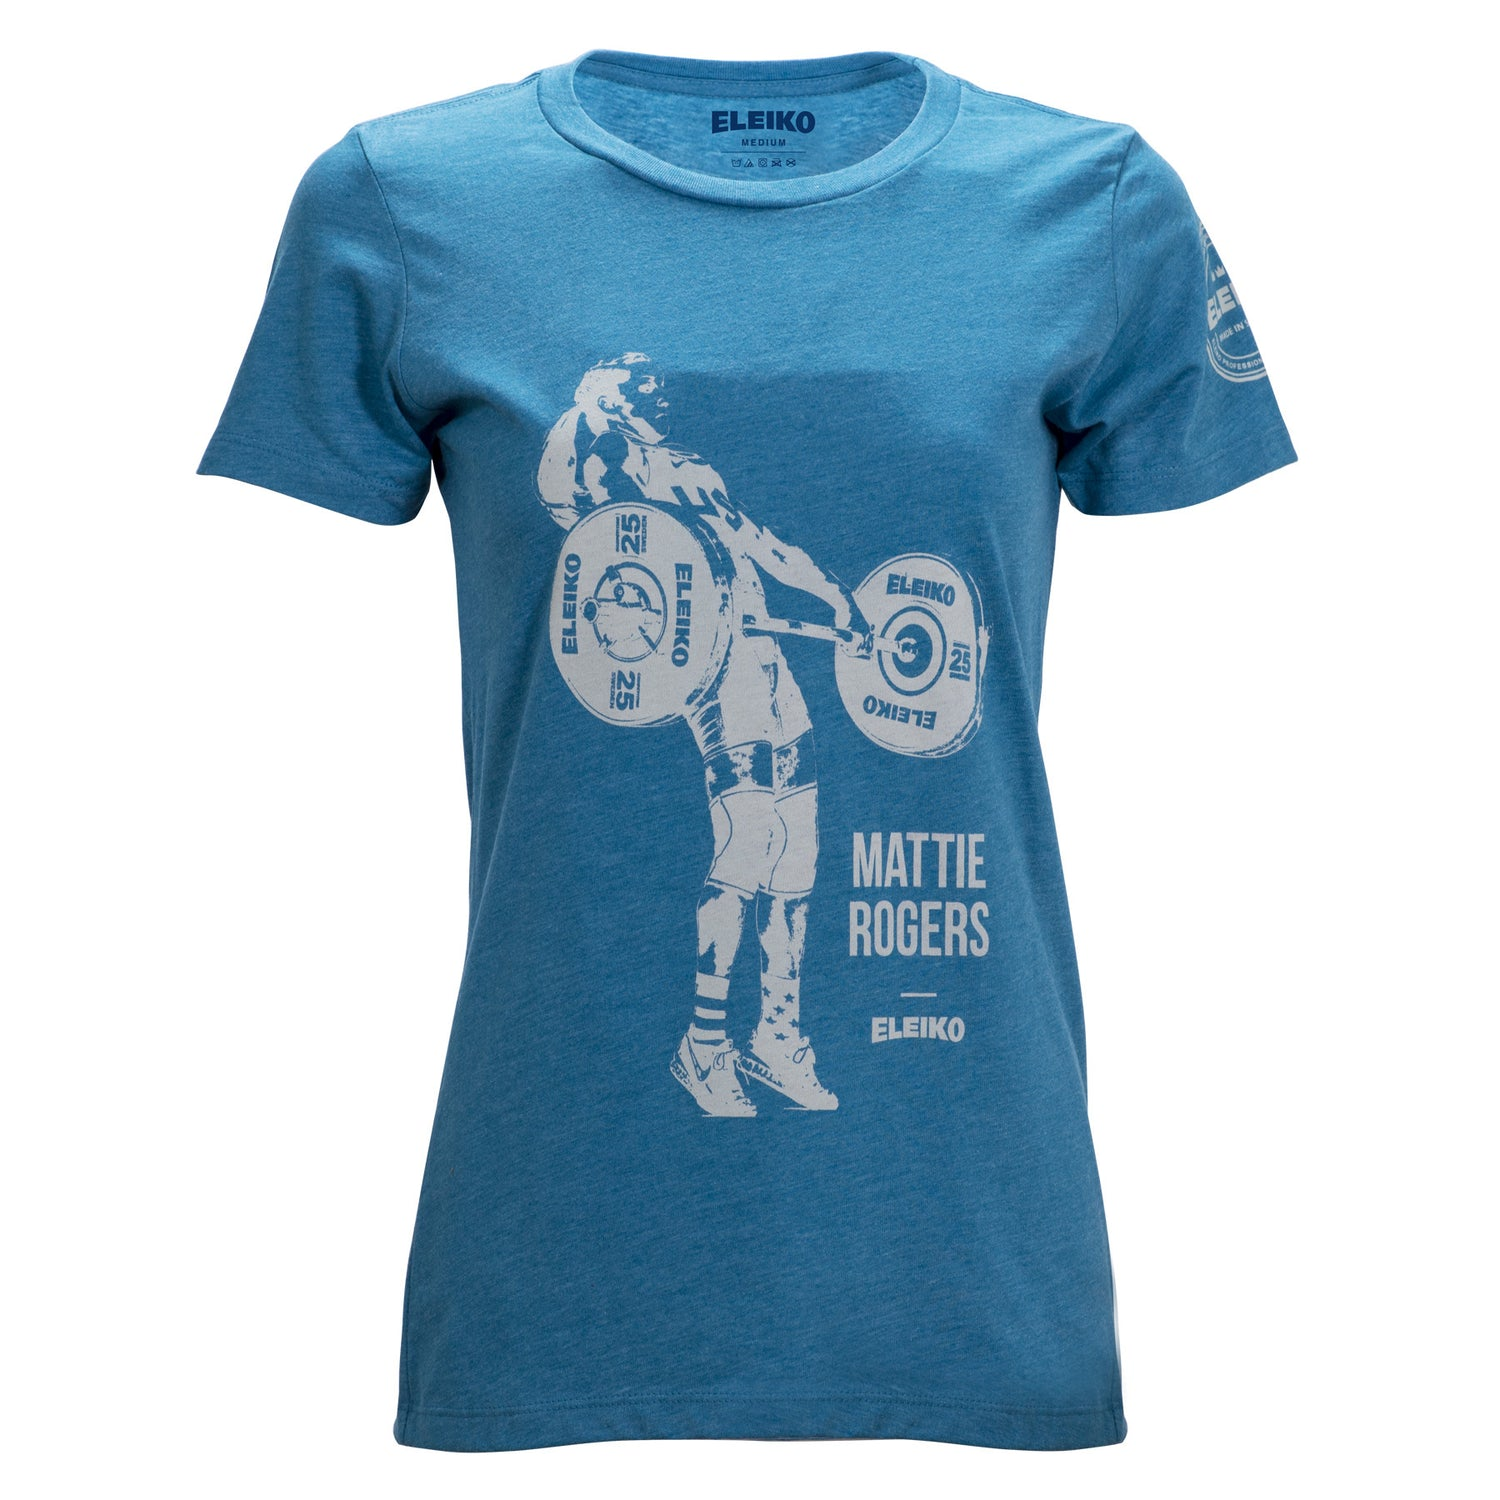 "Eleiko ""Mattie Rogers"" T-Shirt, MENS/WOMENS"